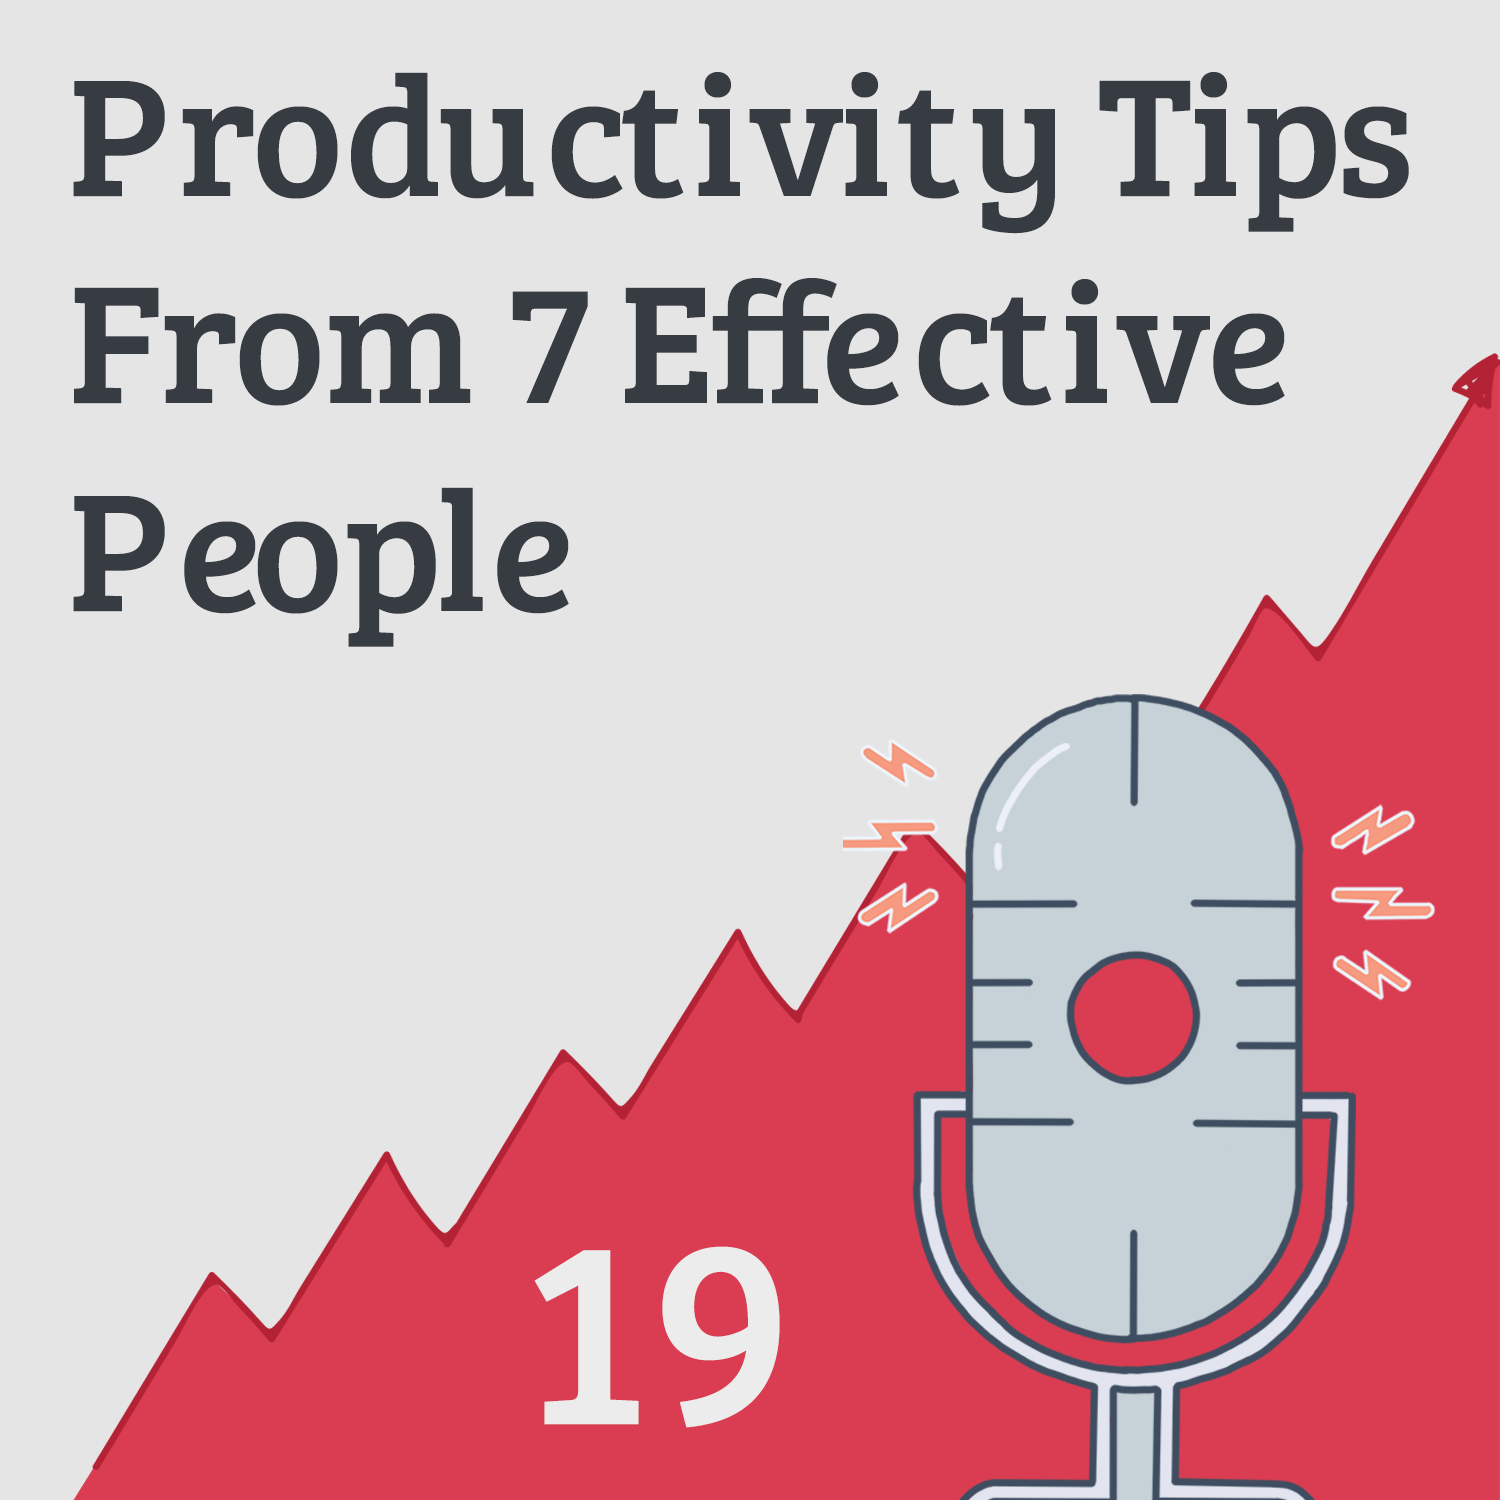 7 Highly Effective People Reveal Their Favorite Productivity Hacks